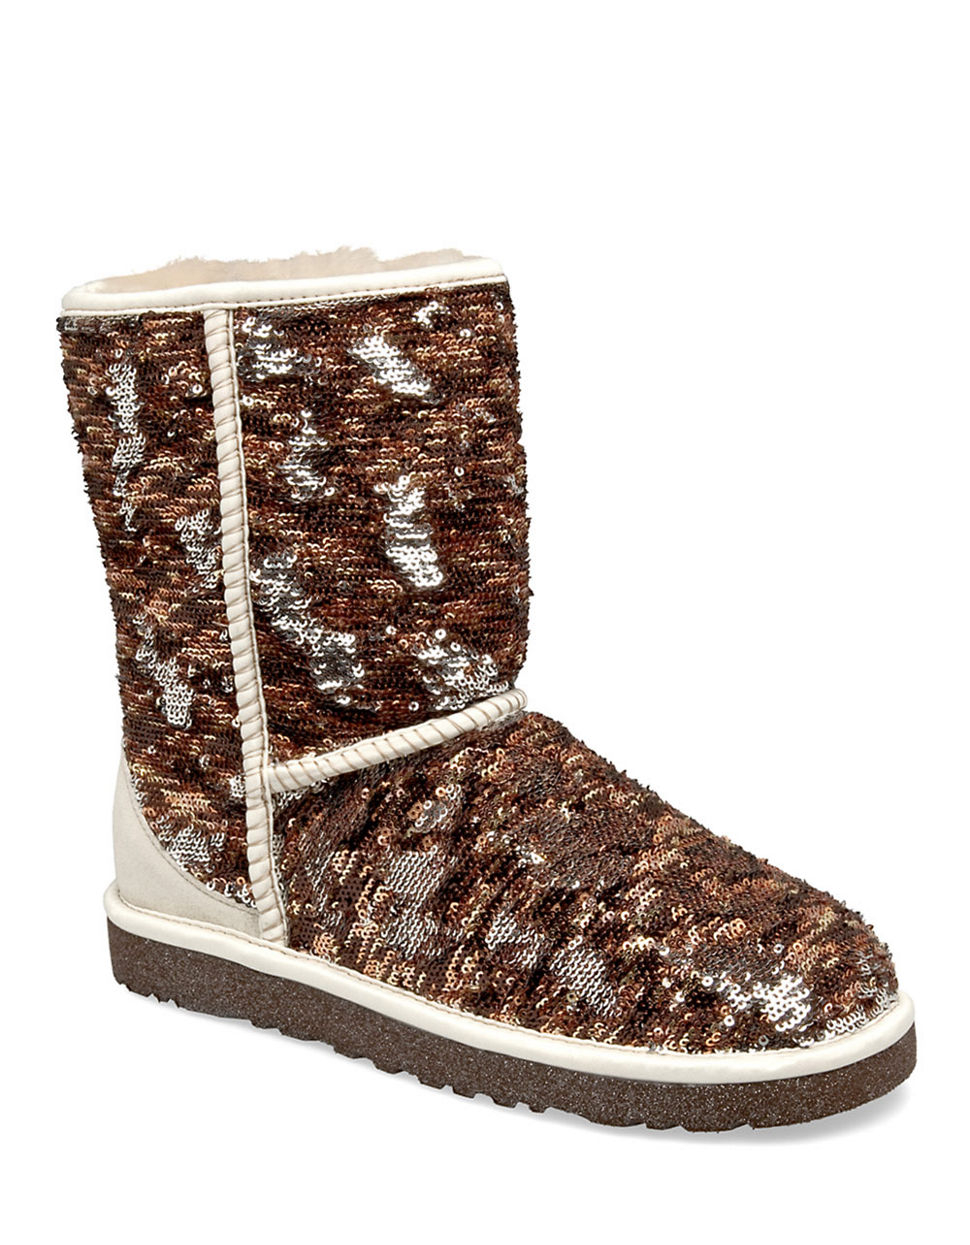 Ugg classic short sparkle boots in brown tan sequins lyst